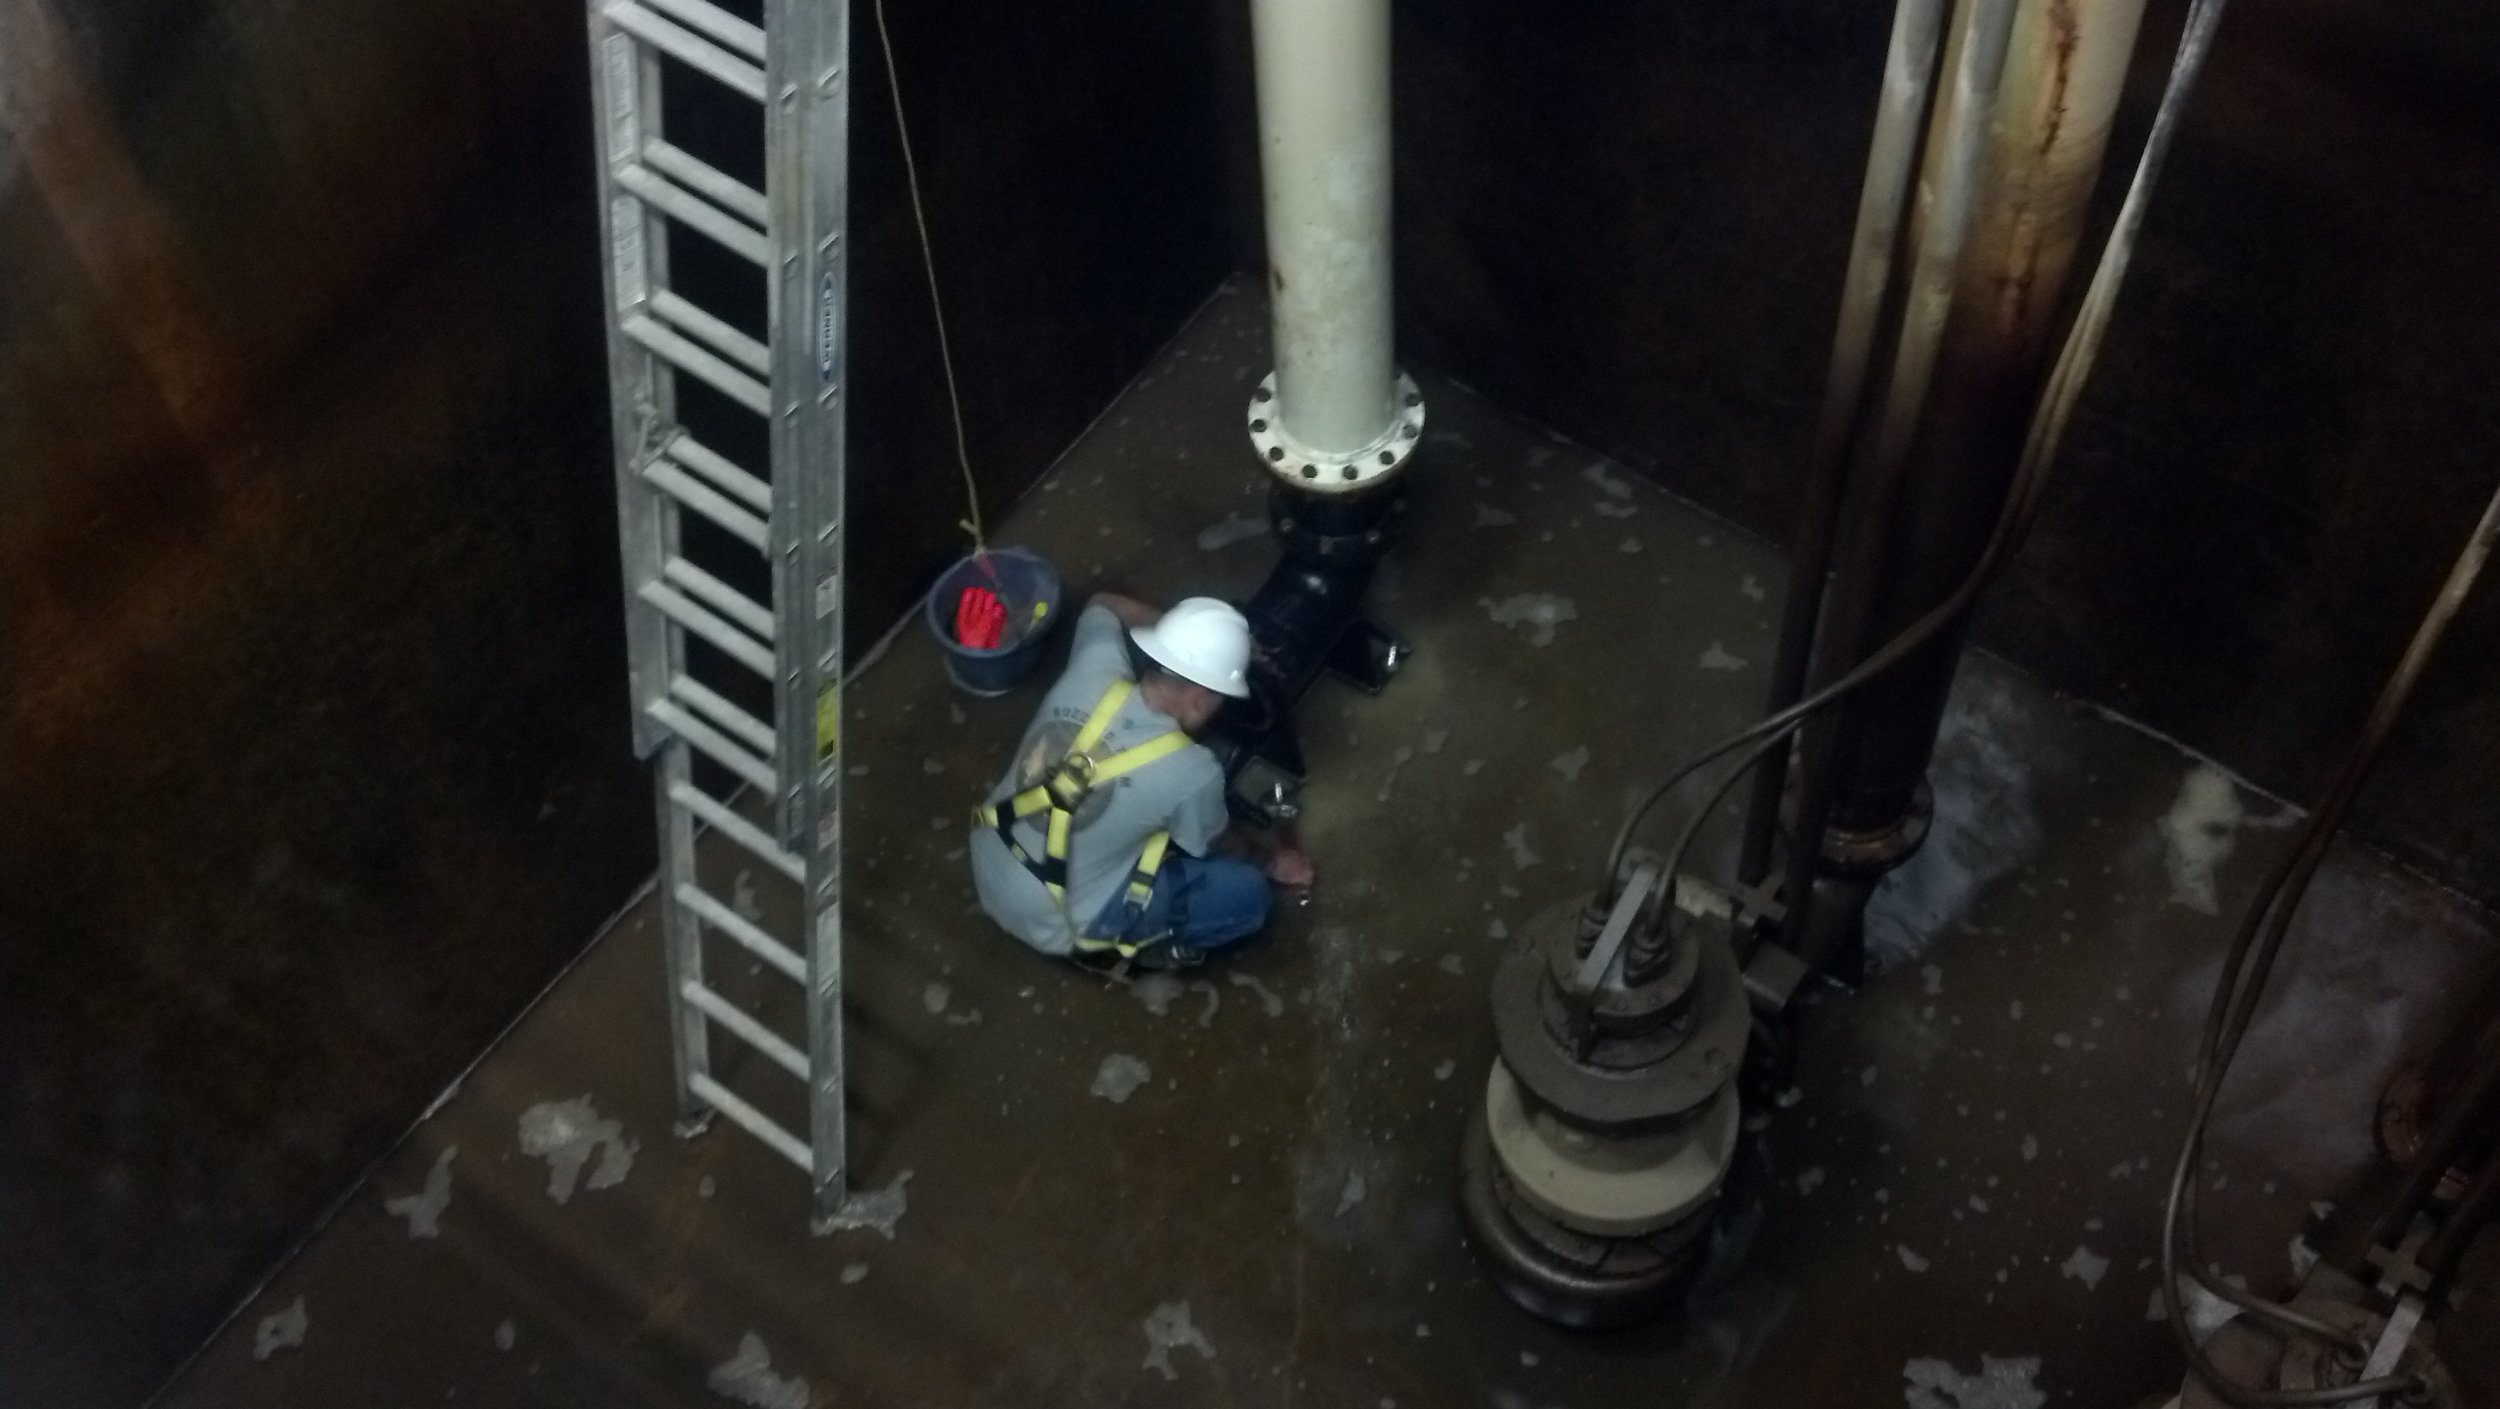 Installing a new feed pump in the plant intake wet-well, used to feed the new 1 MGD treatment skid expansion.